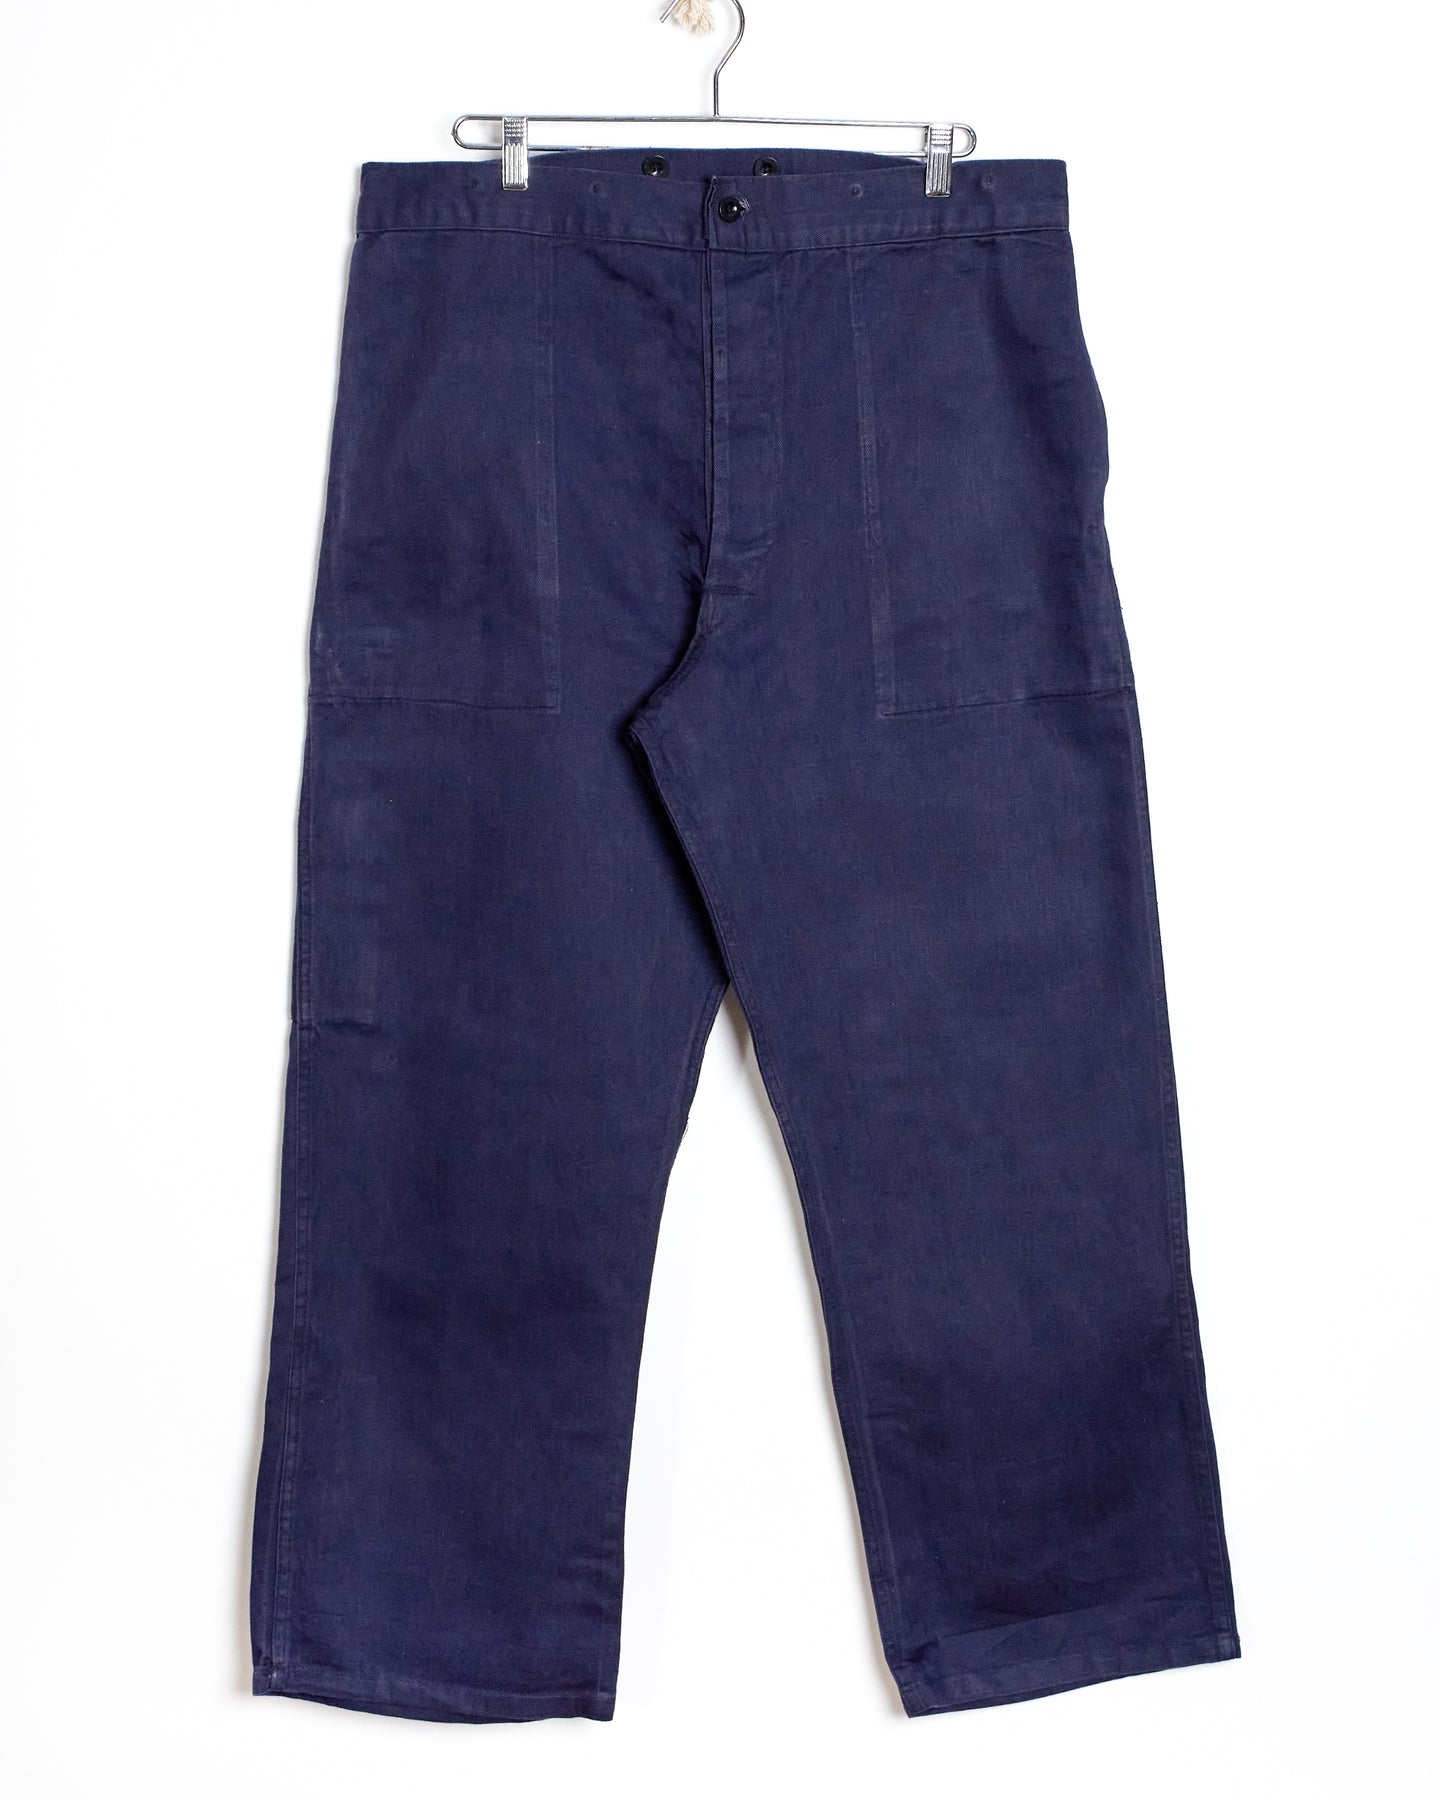 French Workwear Pants